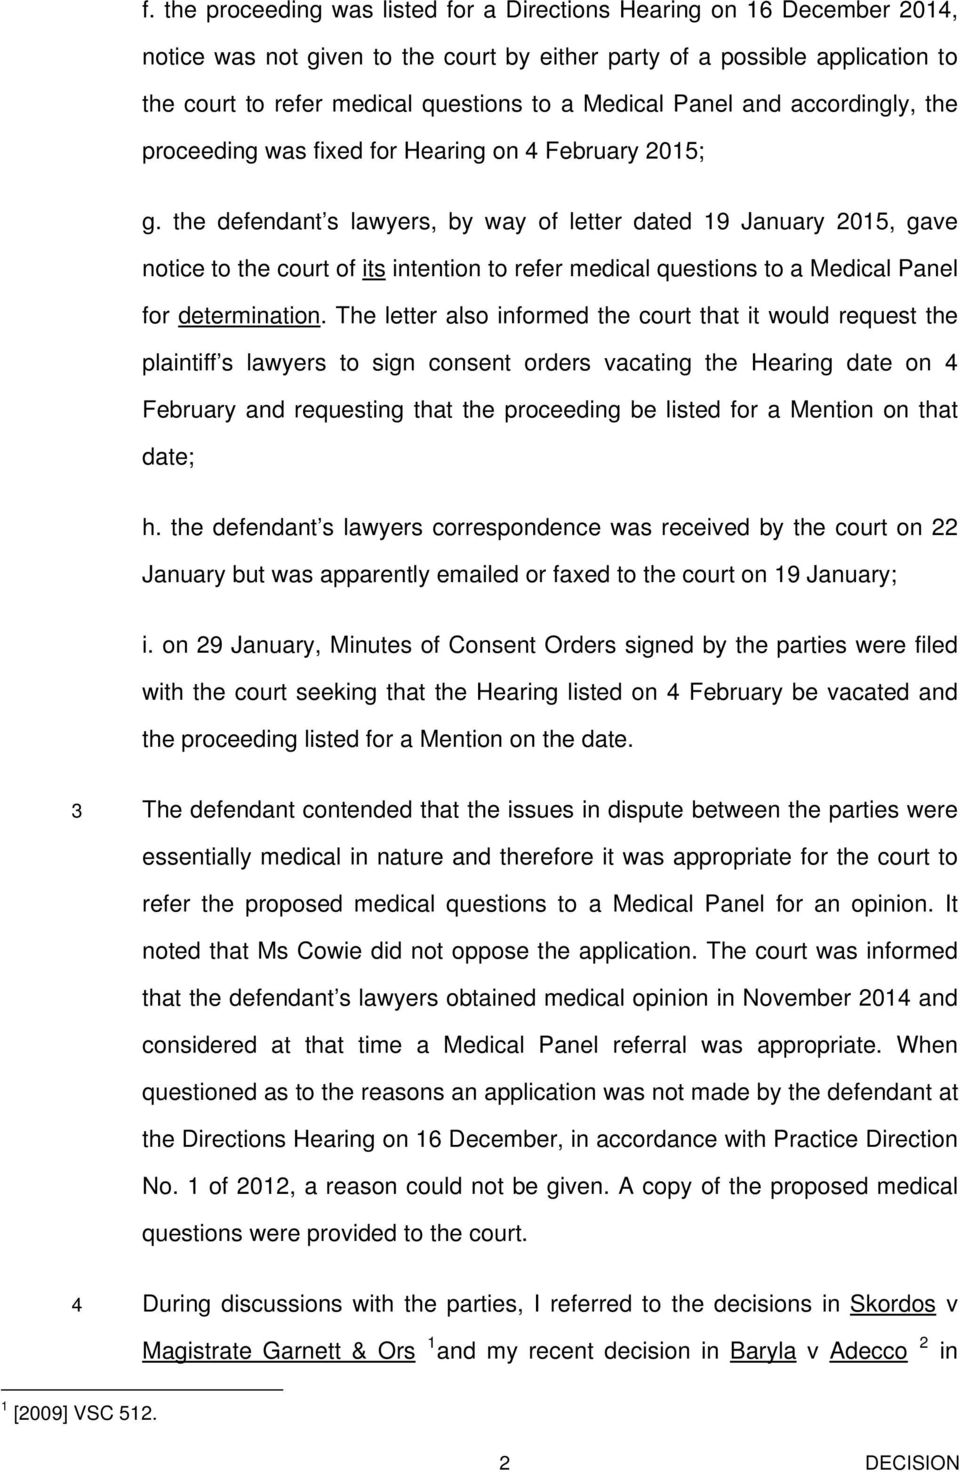 the defendant s lawyers, by way of letter dated 19 January 2015, gave notice to the court of its intention to refer medical questions to a Medical Panel for determination.